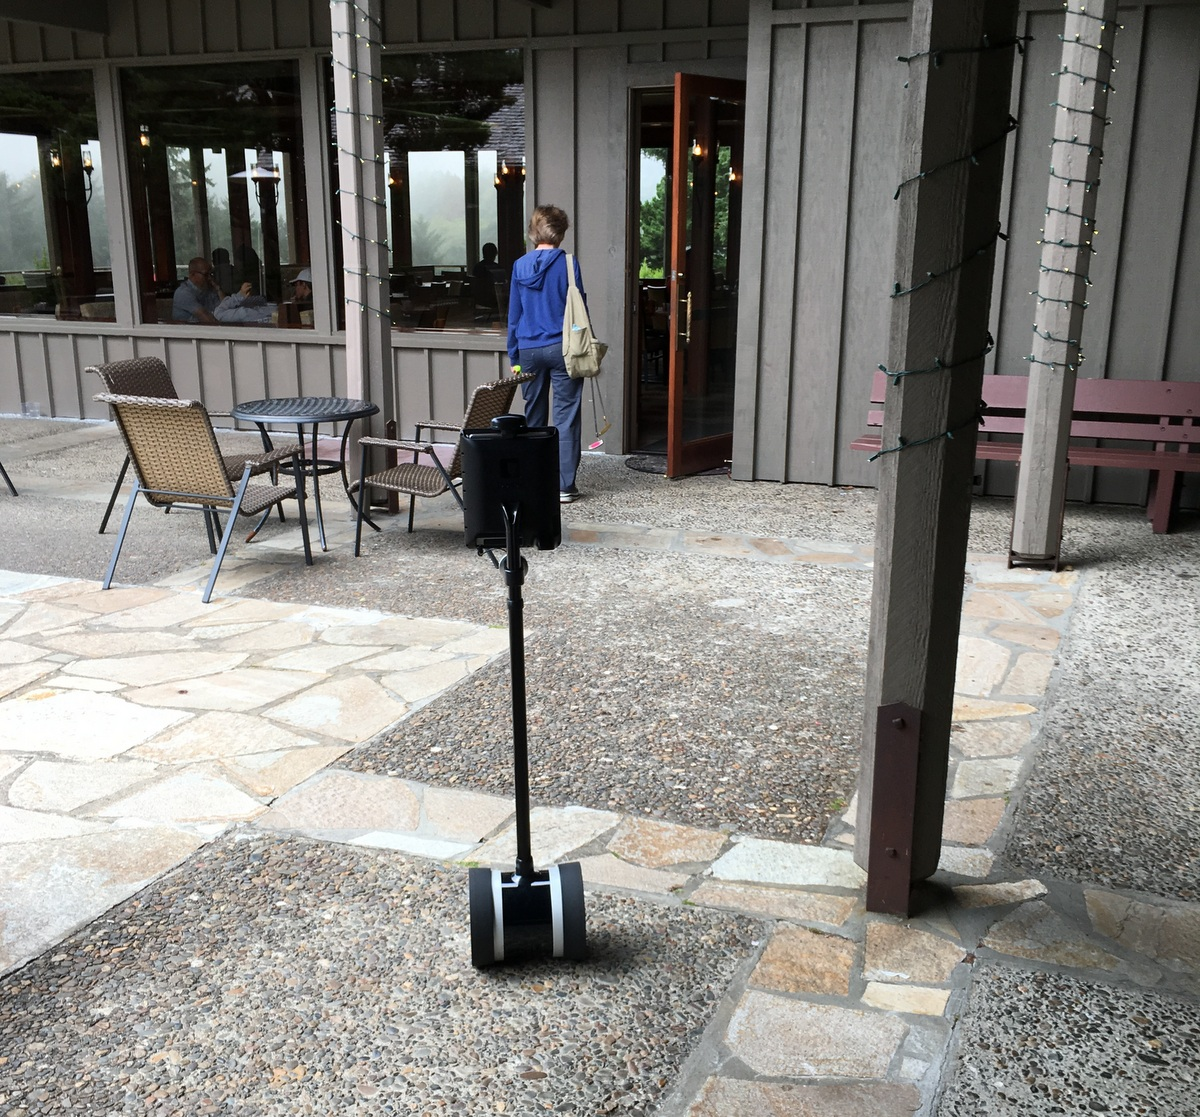 Double 2 telepresence robot at hotel